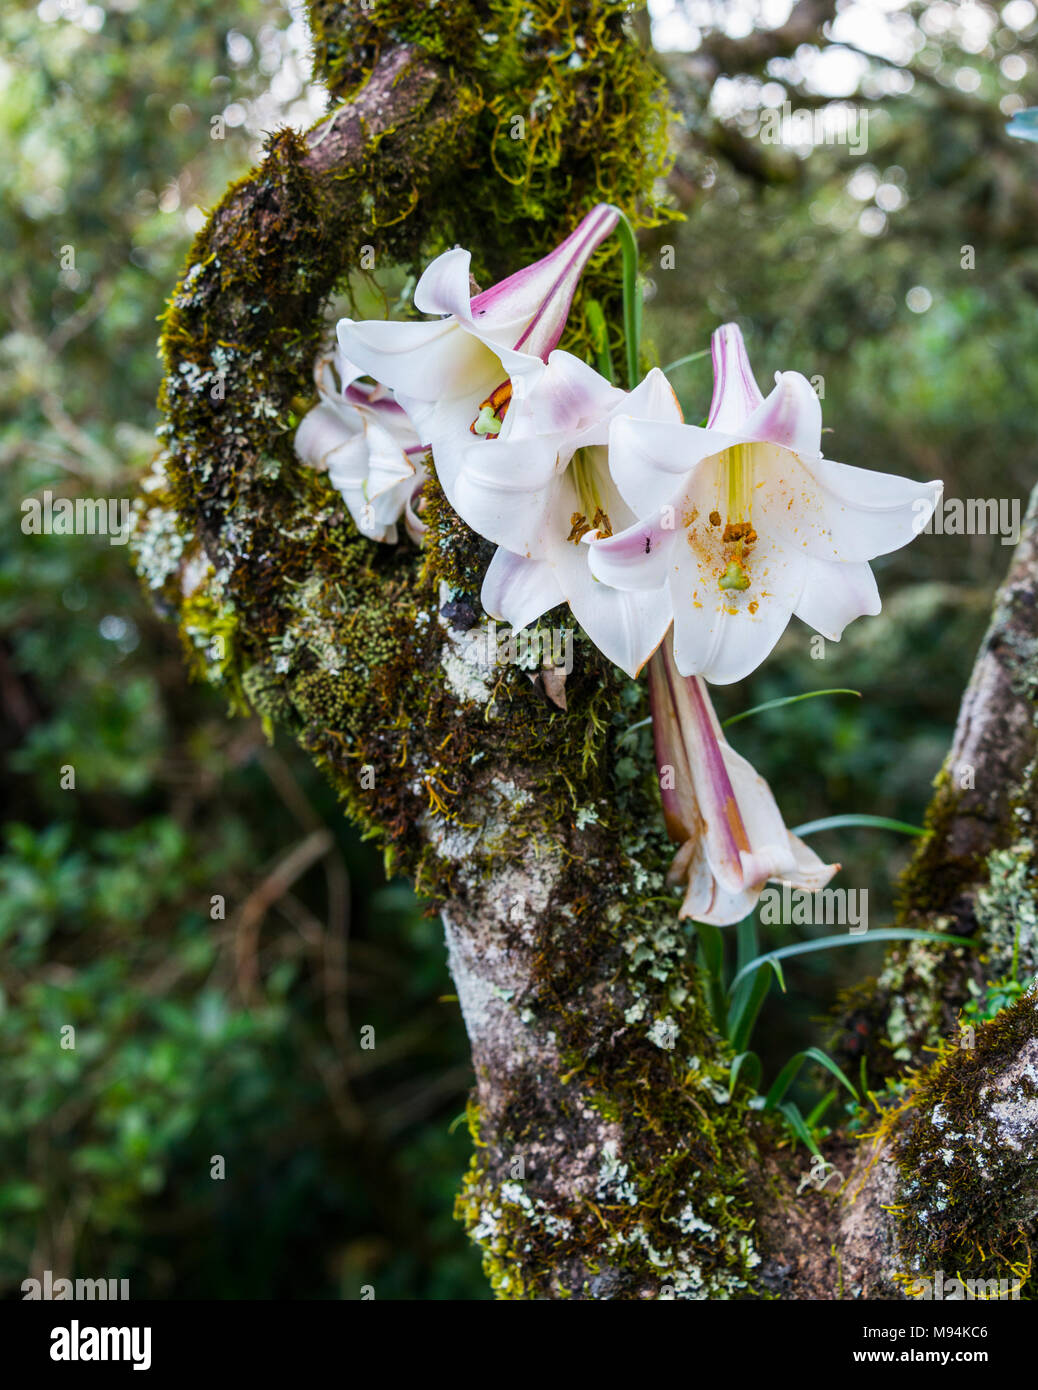 Wild Lily Flower Growing In Tree In South Africa At The Famous